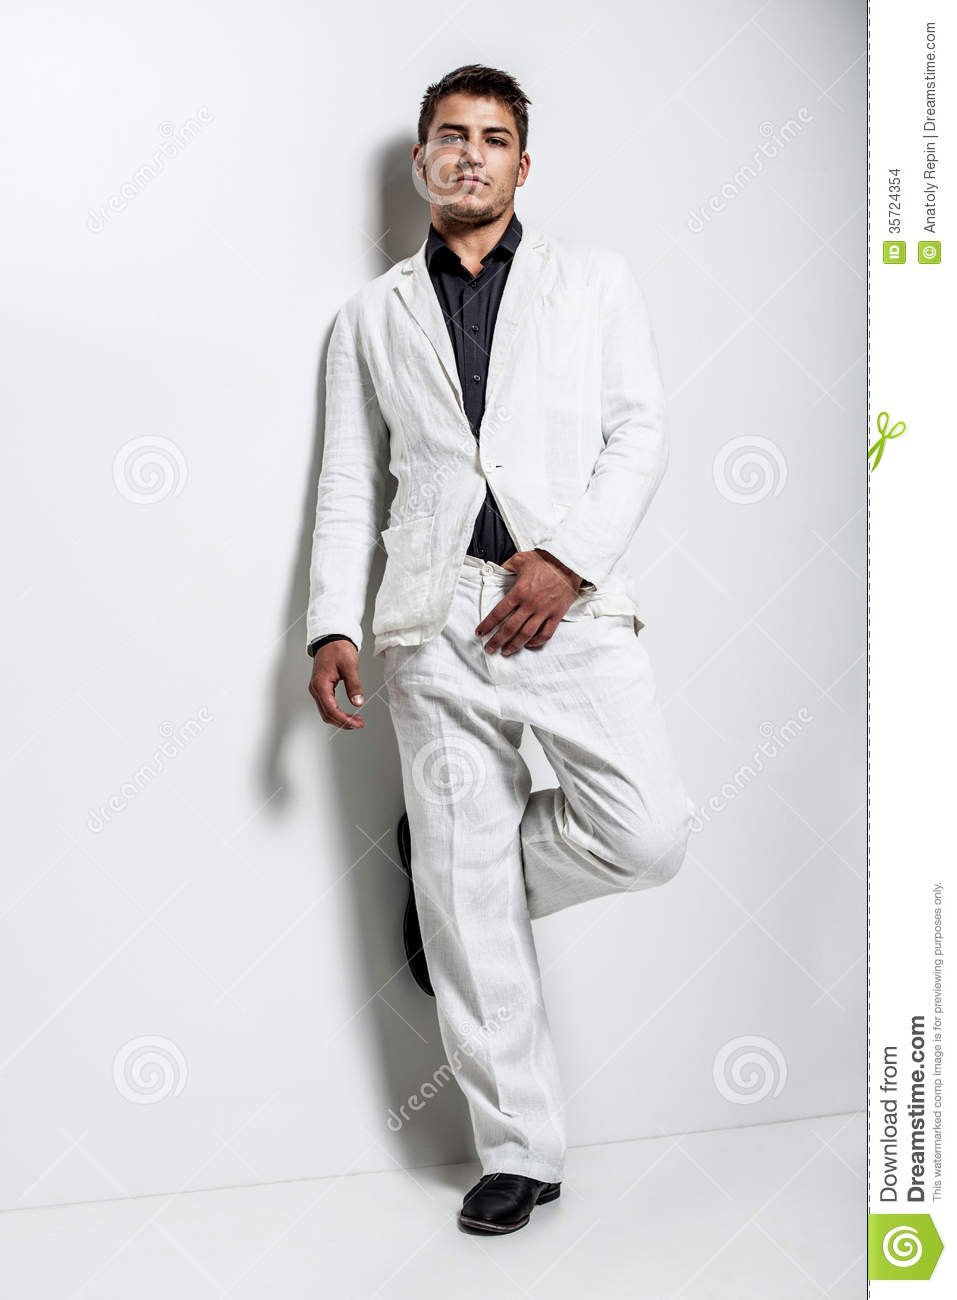 young man wearing white suit stock images image 35724354. Black Bedroom Furniture Sets. Home Design Ideas